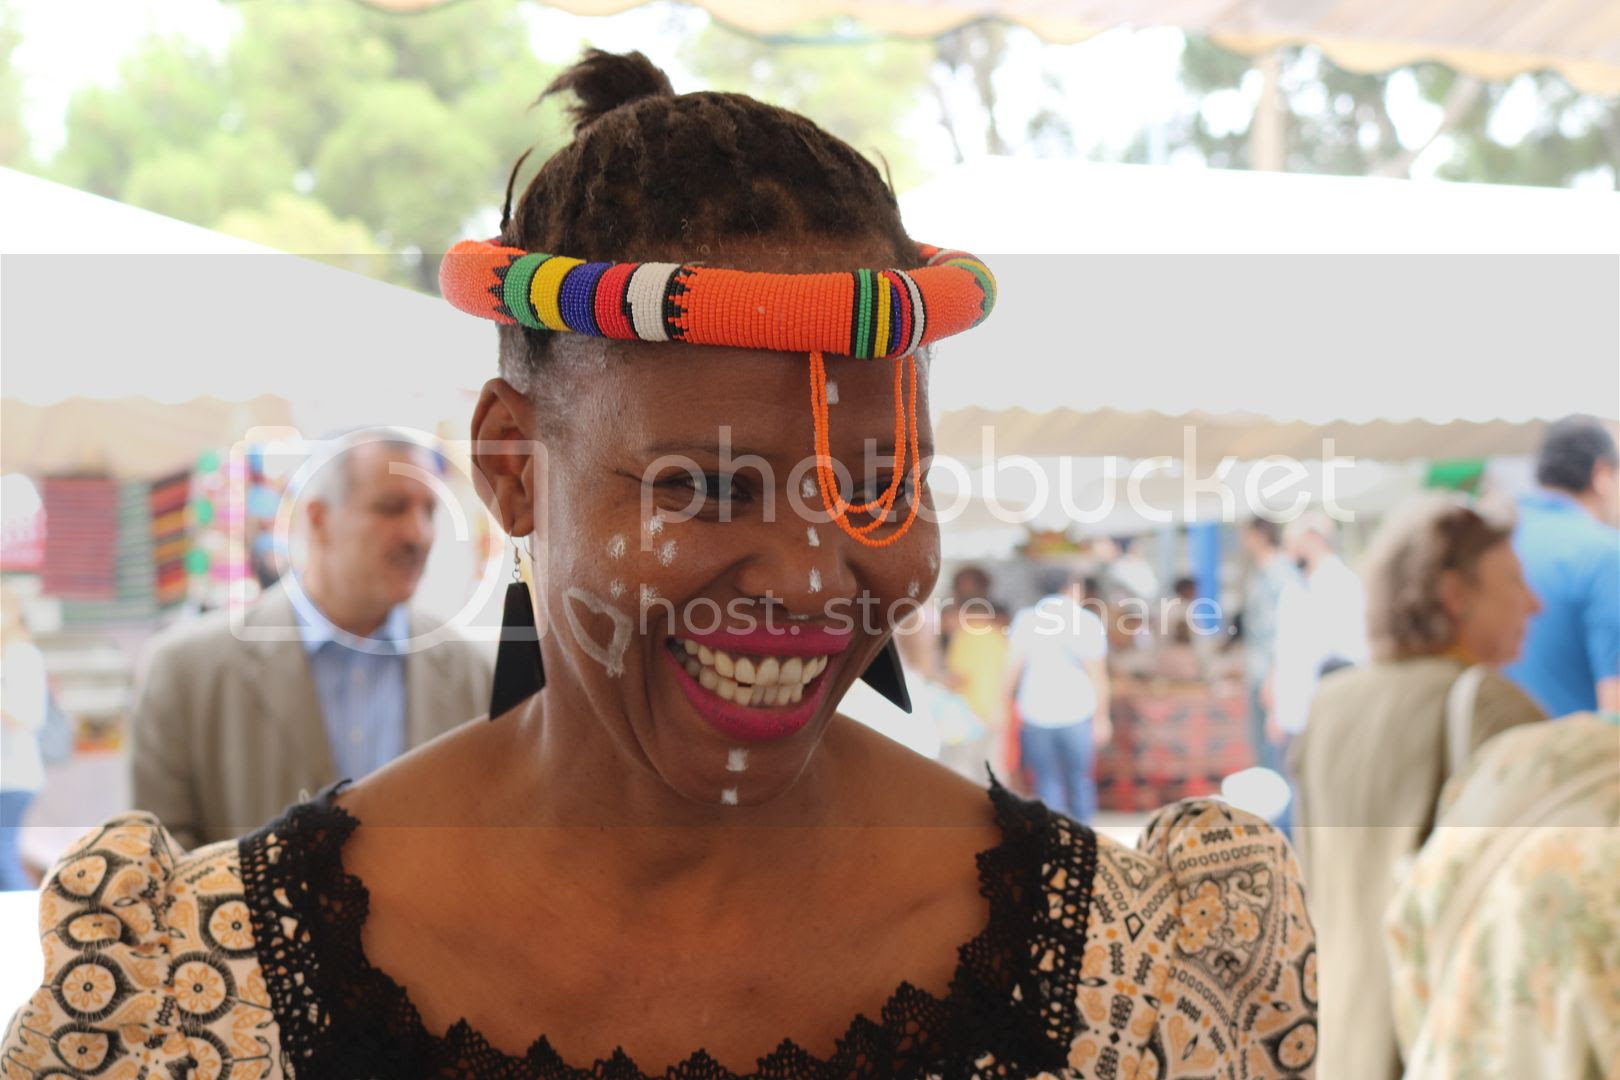 photo South African Custome_zps9kewxt9f.jpg